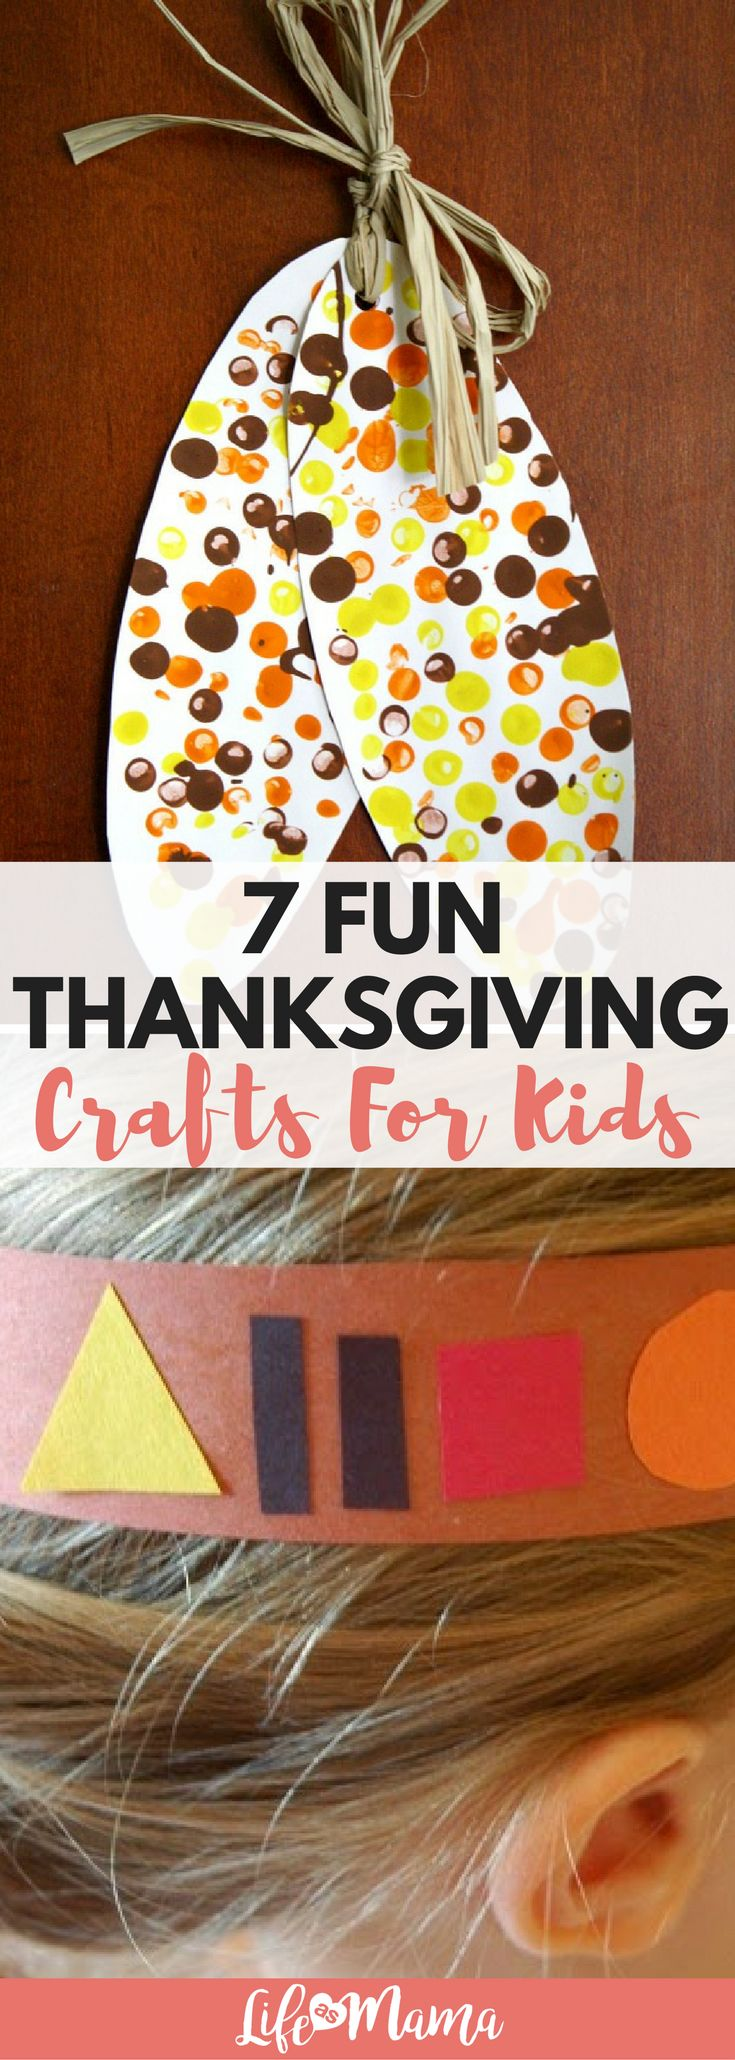 Not only is it the official start to the holiday season, but Thanksgiving is an amazing way to start teaching our kids how to reflect on their blessings. A fun way to do that is through crafting, and that's why we've rounded up some great Thanksgiving cra